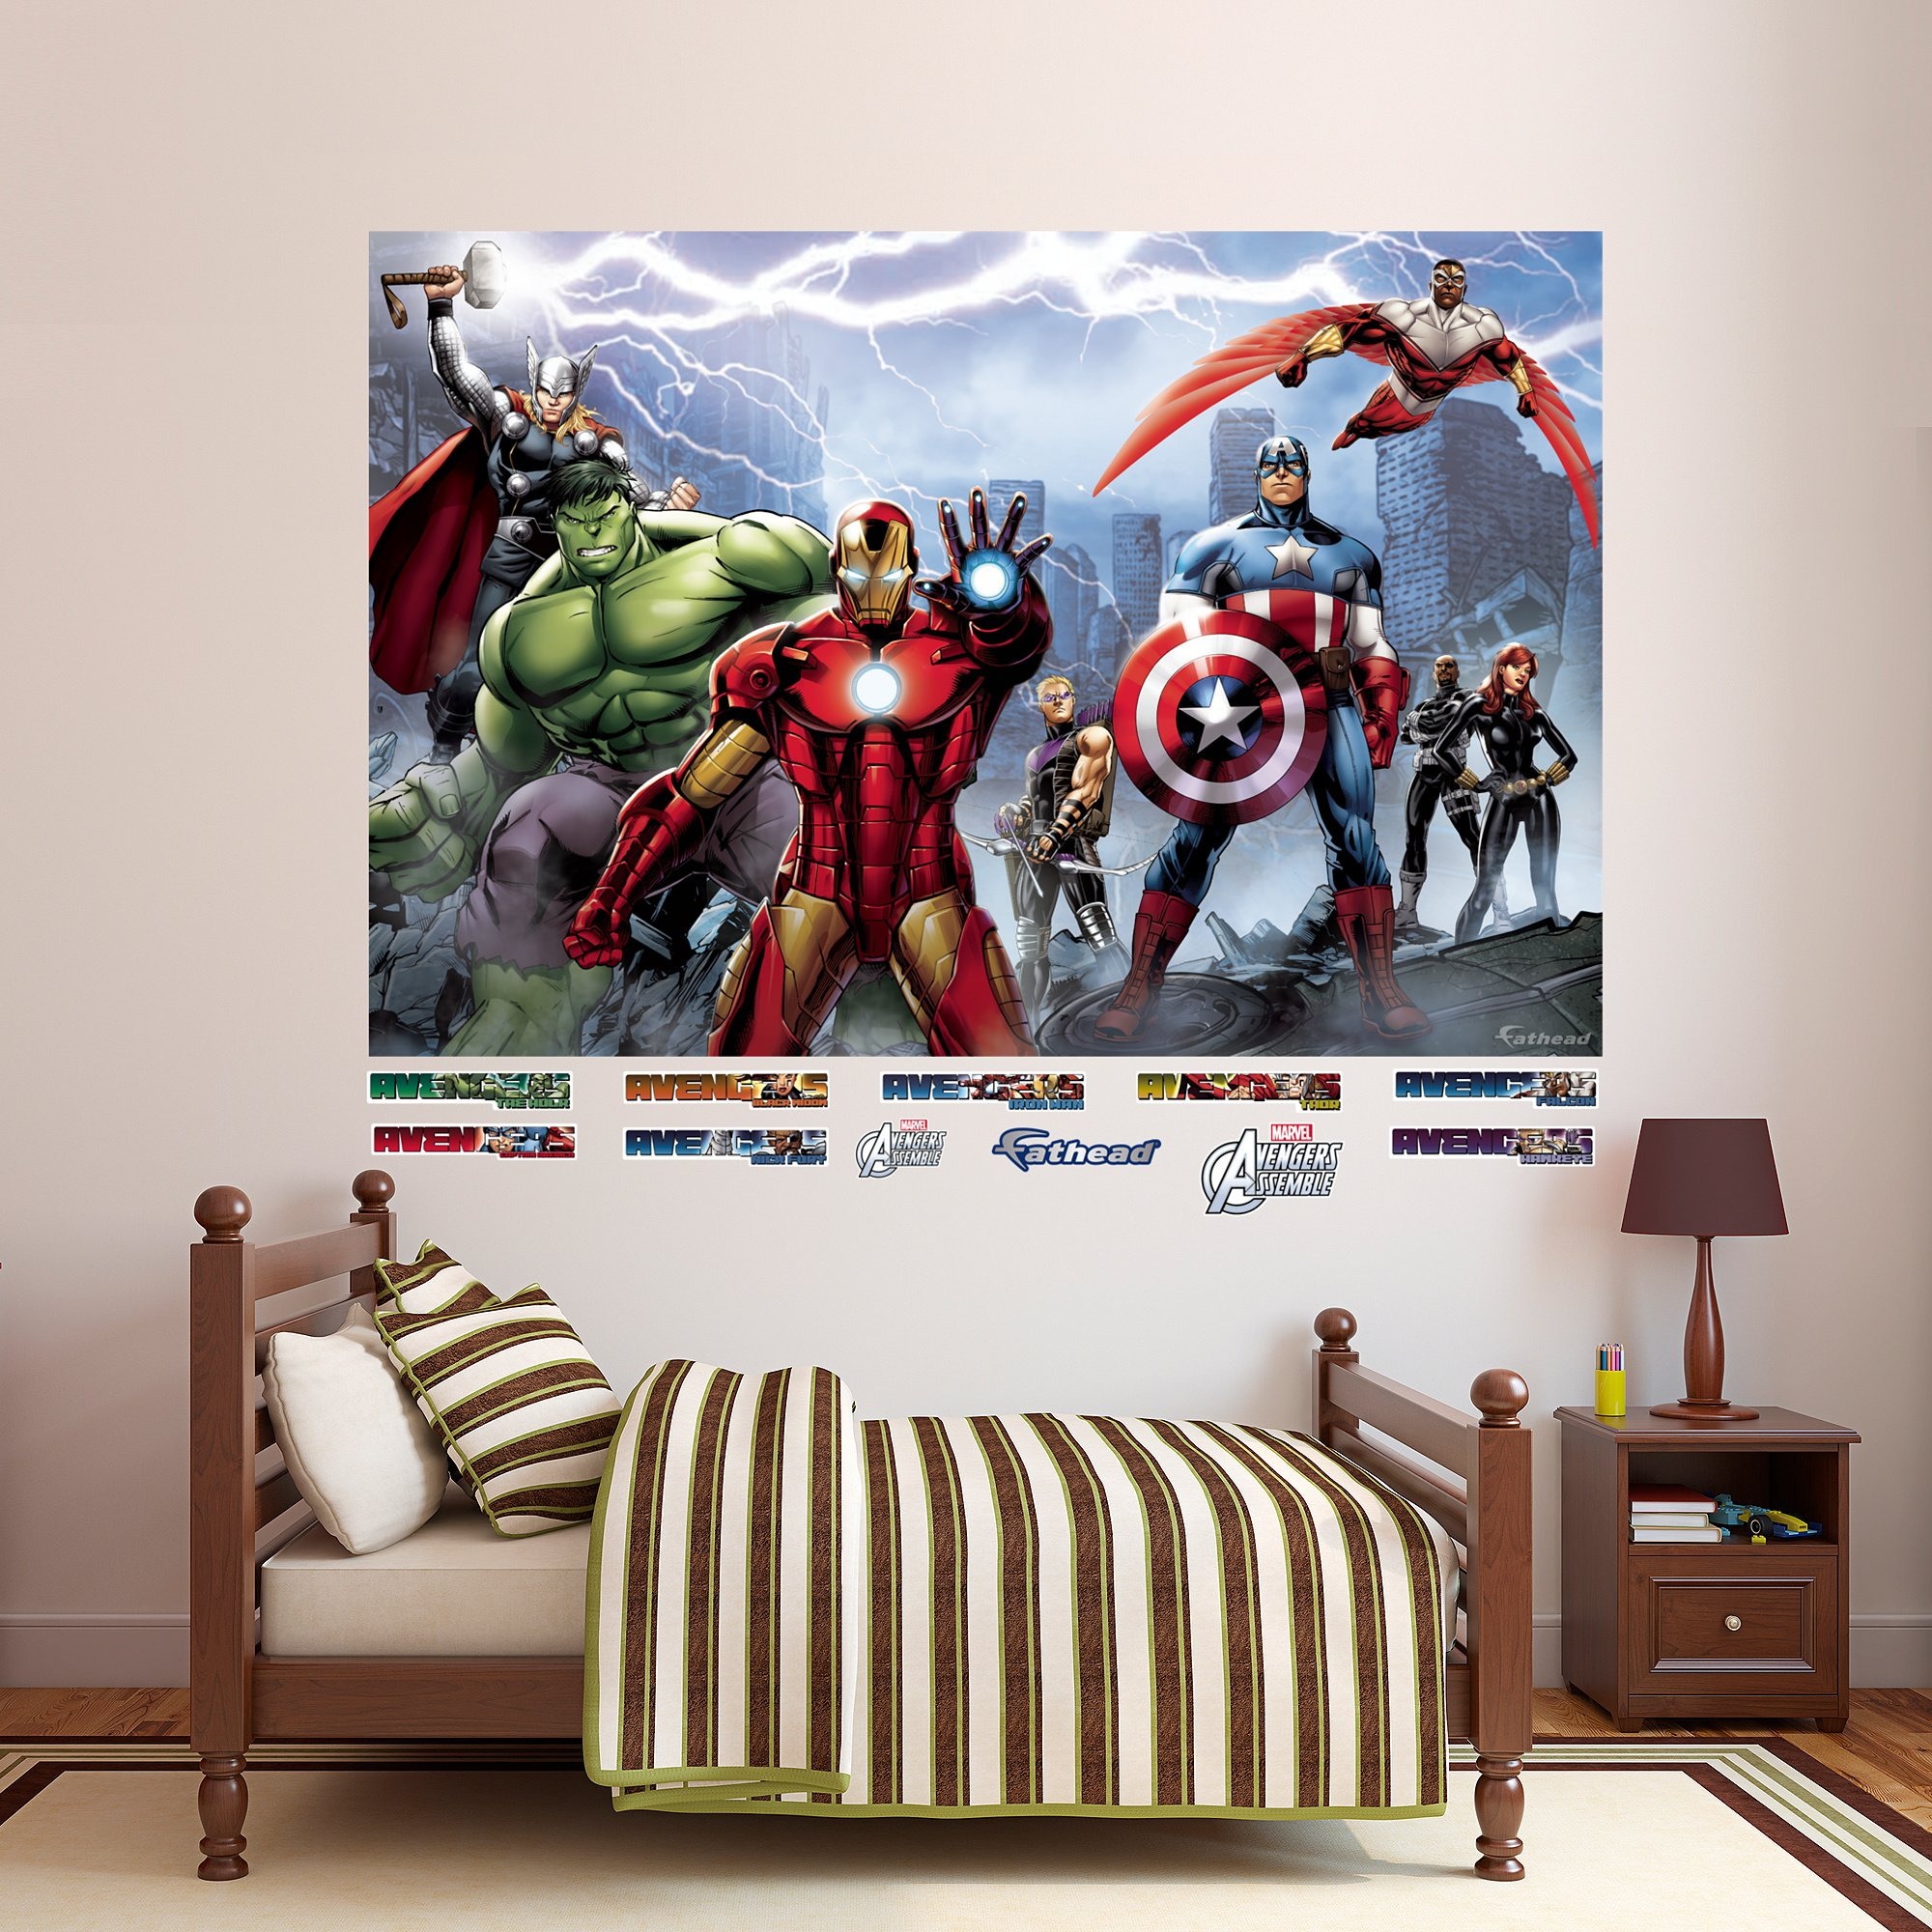 FATHEAD Avengers Assemble Mural Real Big Wall Decal by FATHEAD (Image #1)